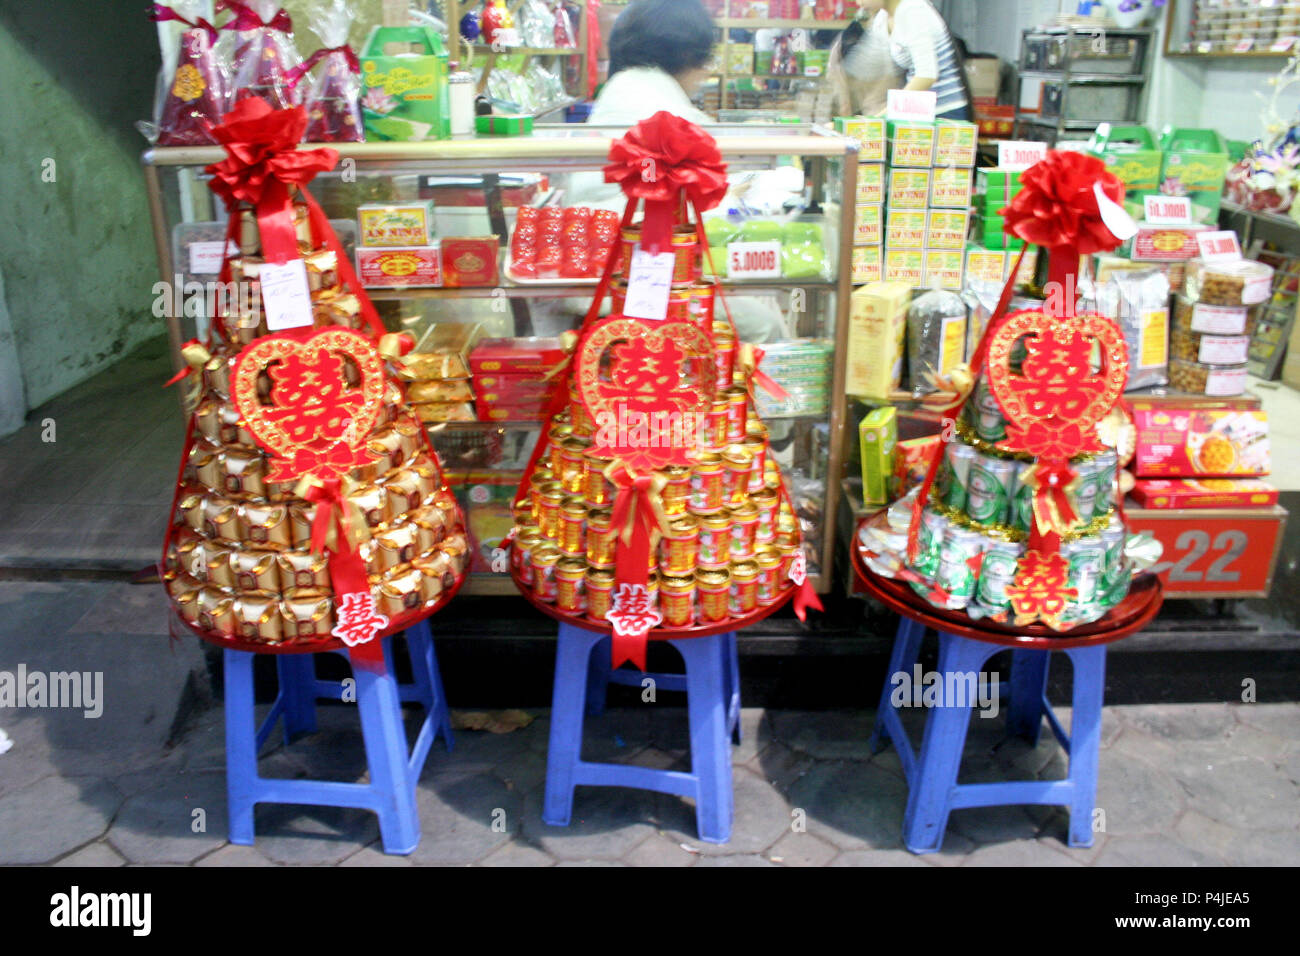 Display Tied with Red Bows outside shop, Hanoi, Vietnam - Stock Image